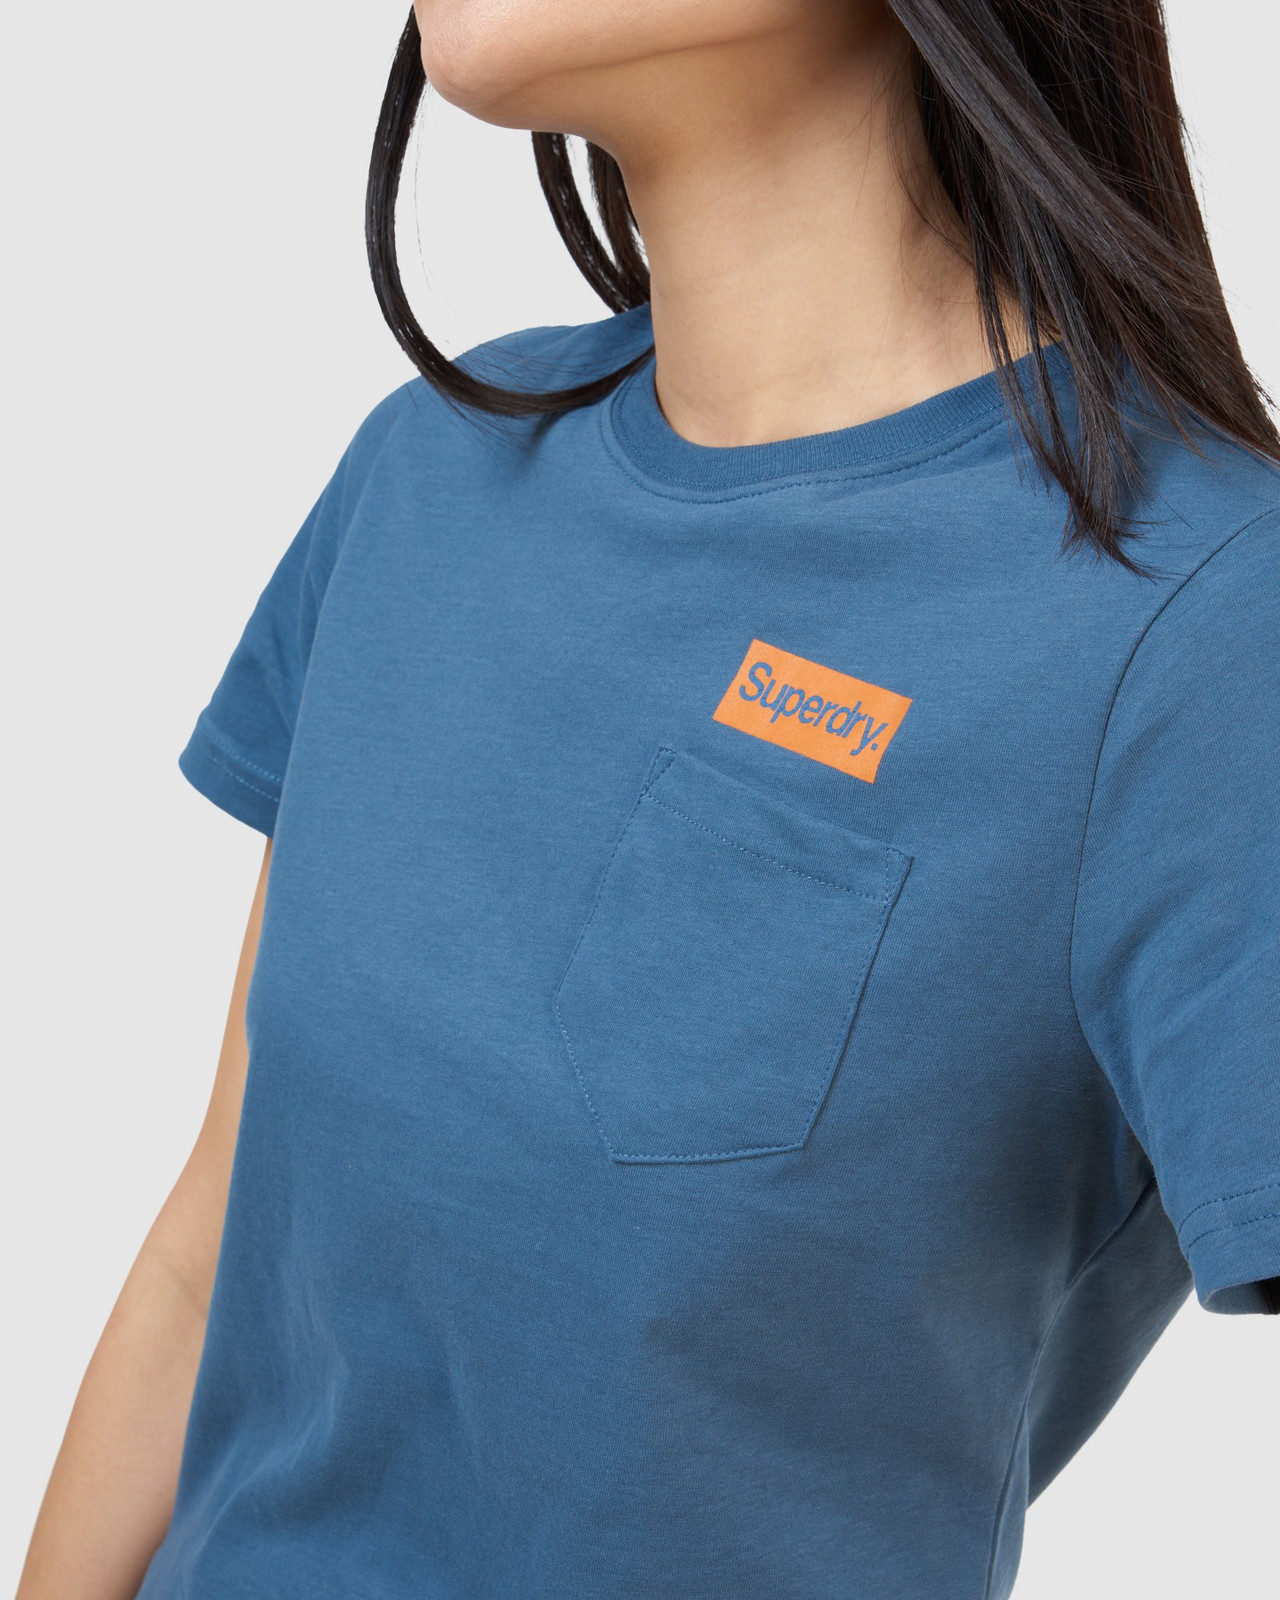 Superdry Womens CL PATINA TEE Blue Printed T Shirts 5